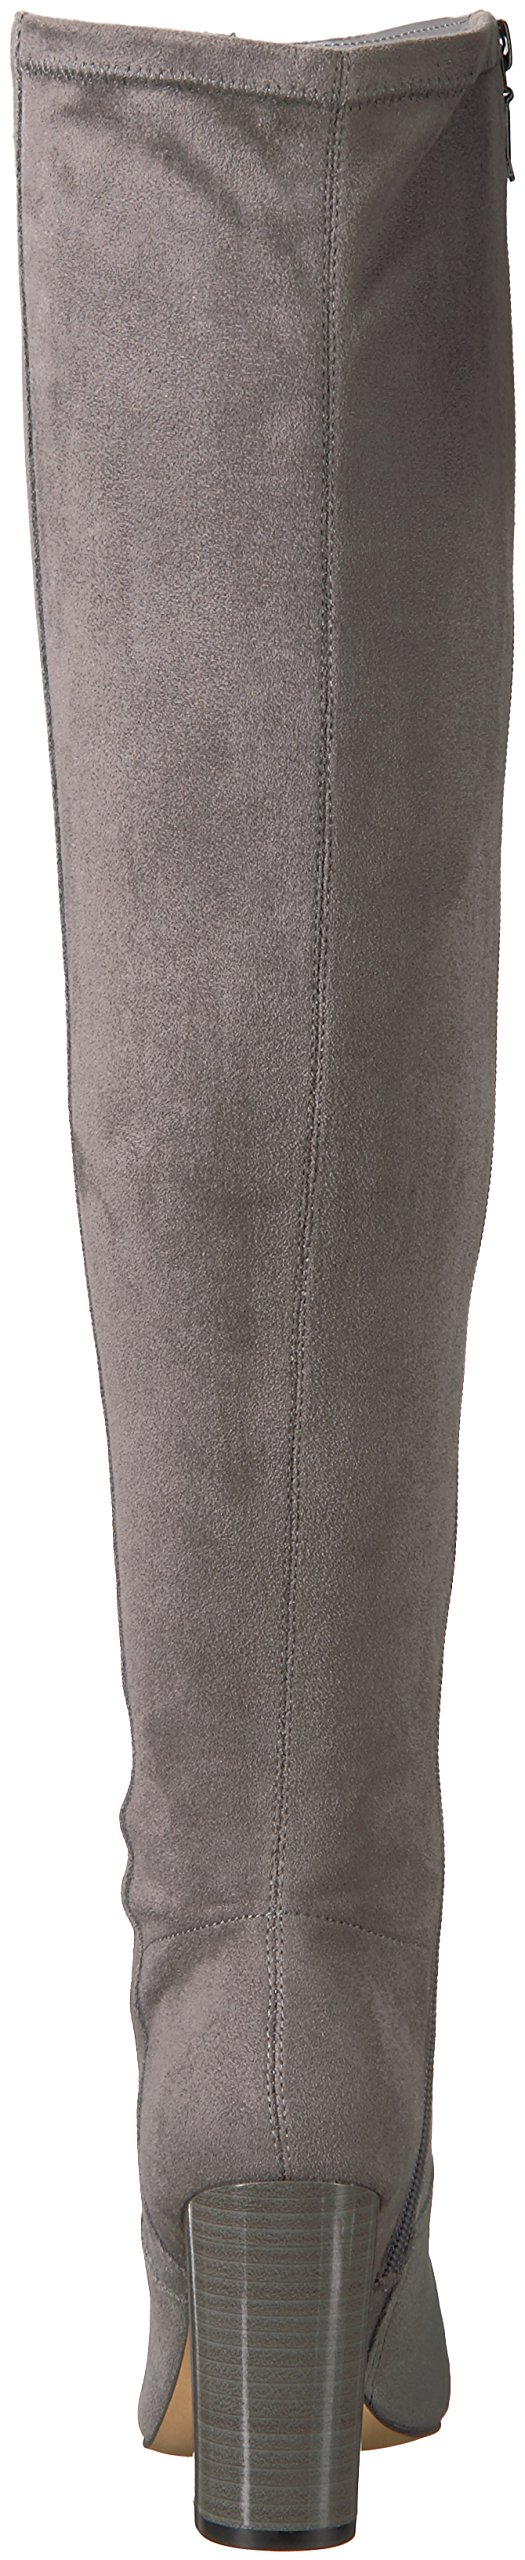 The Fix Women's Lyndsey Over-The-Knee Block-Heel Boot, Elephant Grey, 6.5 M US by The Fix (Image #2)